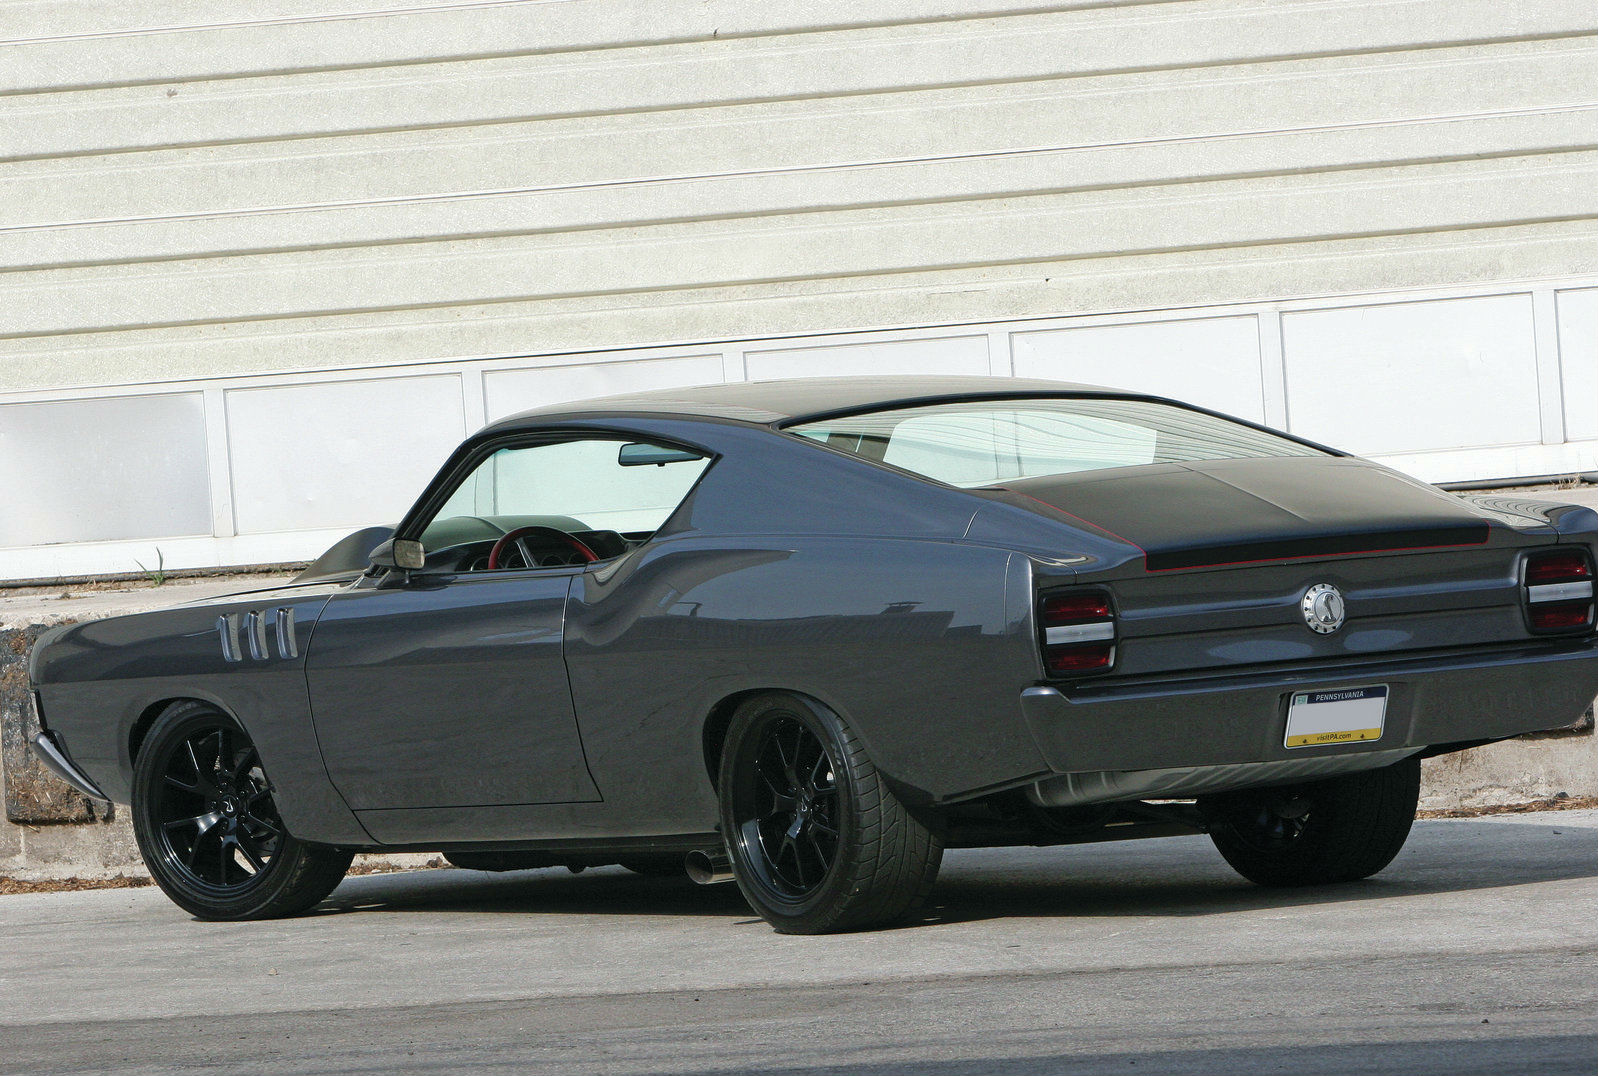 George Poteet'-s 1969 Ford Torino, built by Rad Rides by Troy, took ...